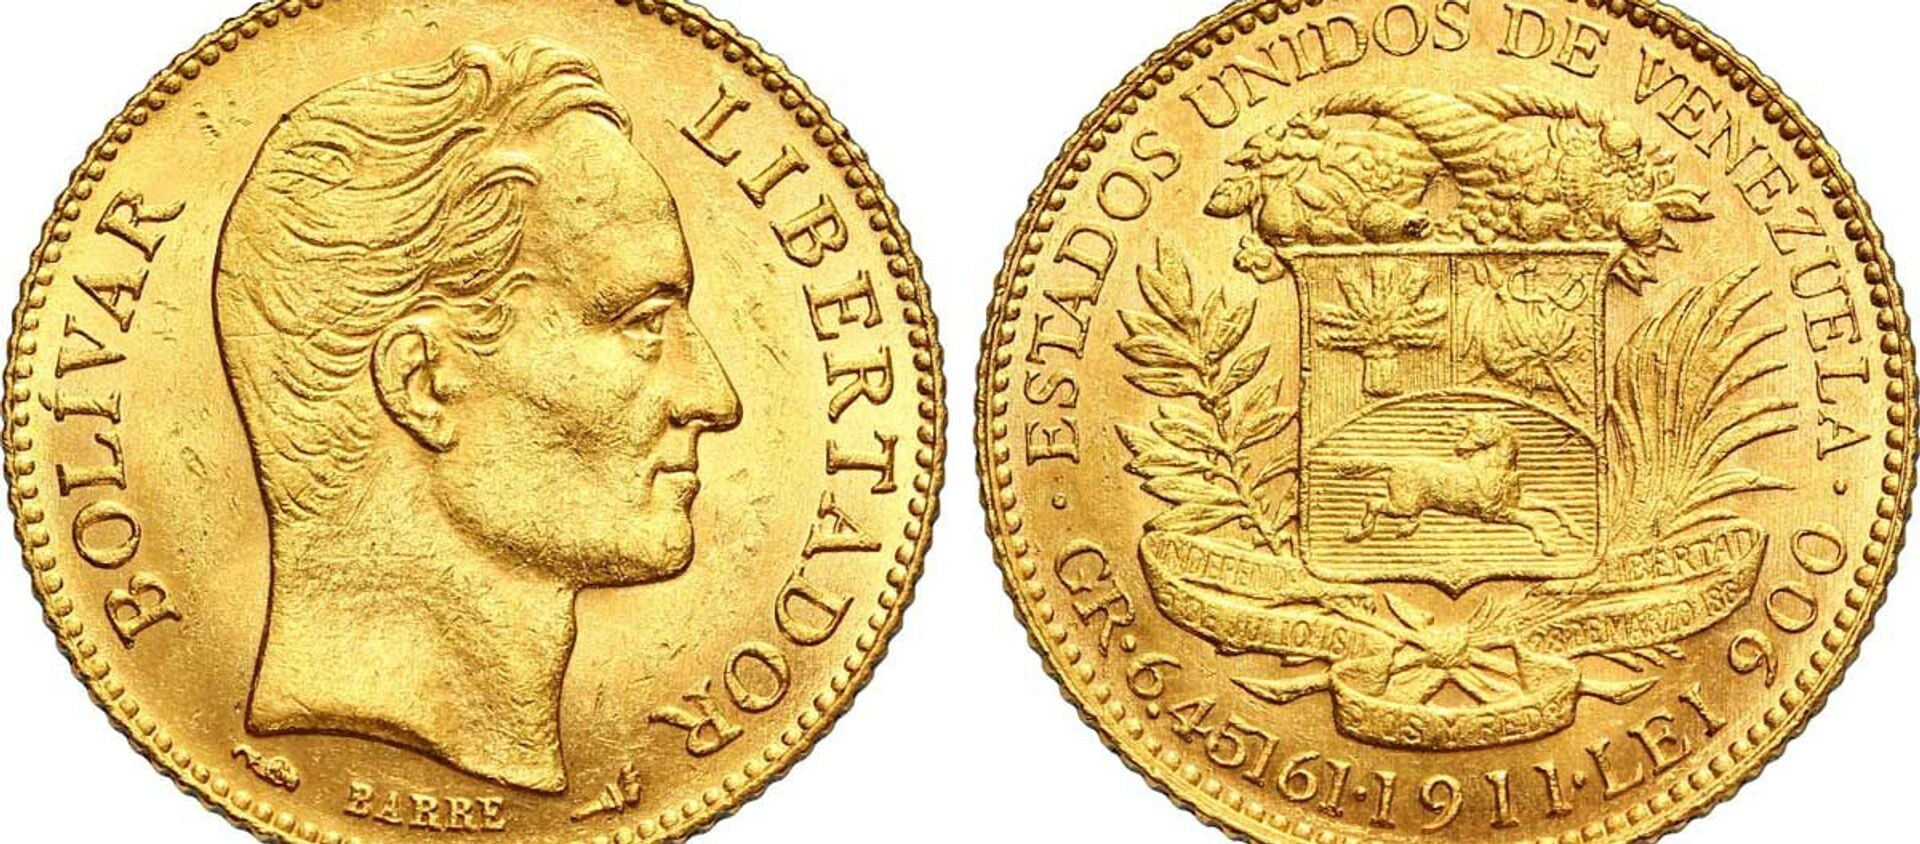 1911 gold 20 bolivares coin featuring the face of Simon Bolivar, a Venezuelan political leader and general who led much of Latin America to independence from the Spanish Empire. - Sputnik International, 1920, 20.07.2021